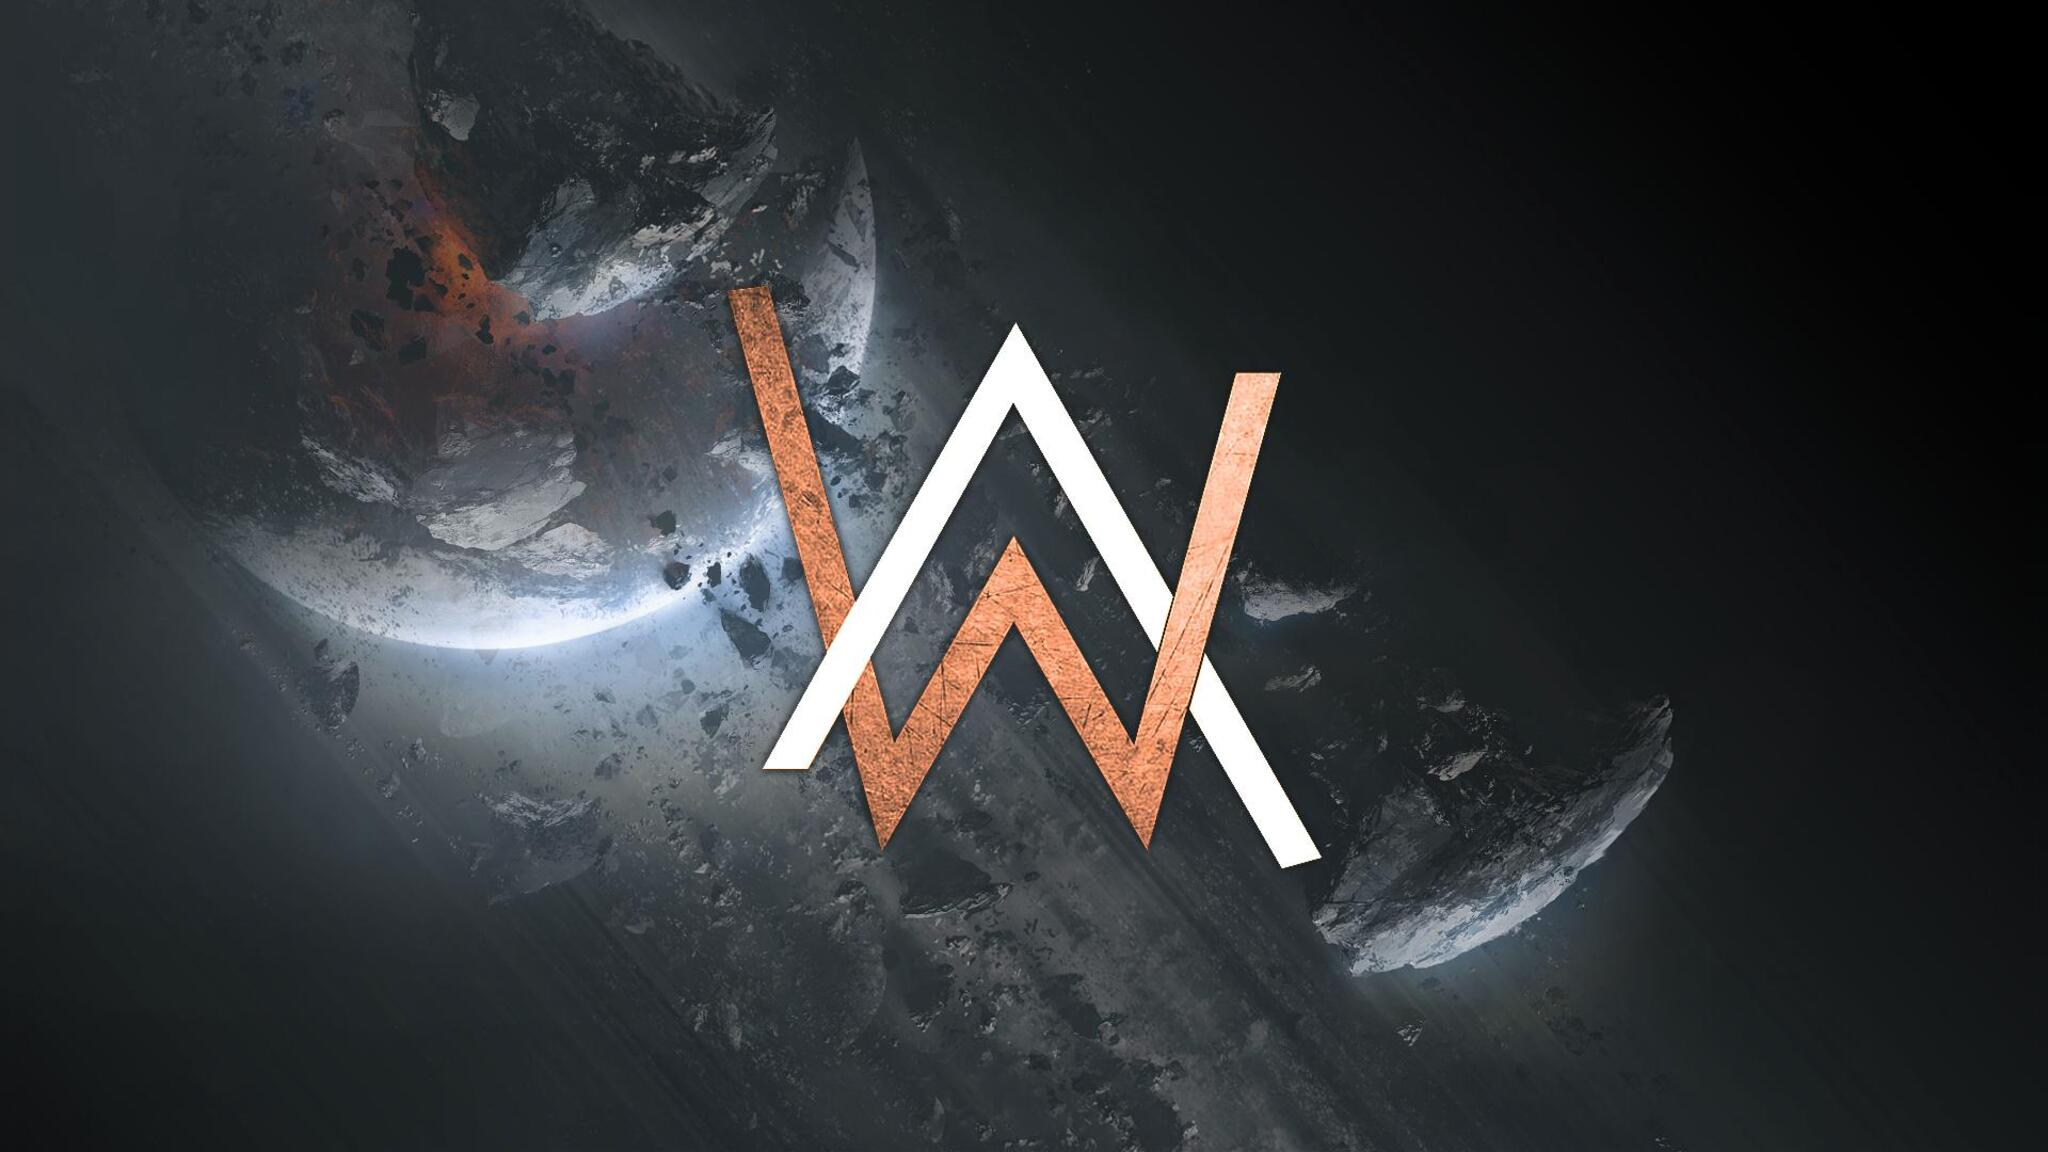 2048x1152 alan walker creative logo 2048x1152 resolution hd 4k wallpapers images backgrounds - Alan walker logo galaxy ...